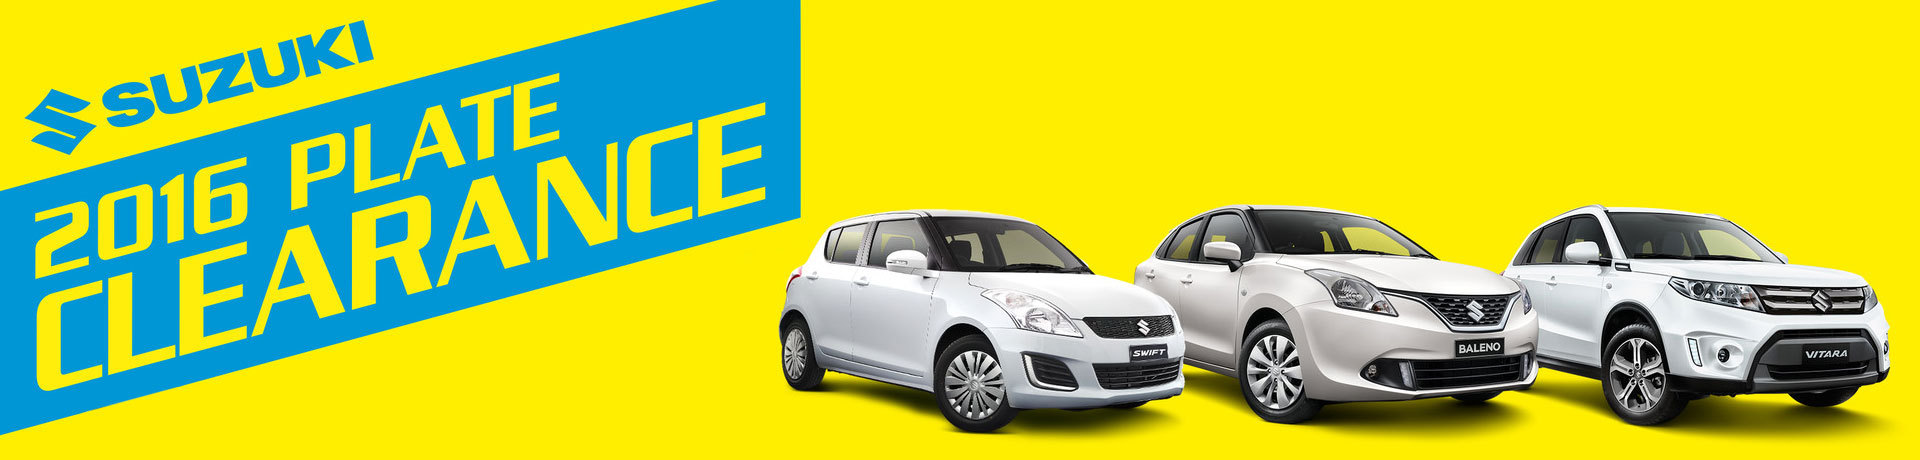 Suzuki National Offer - Plate Clearance